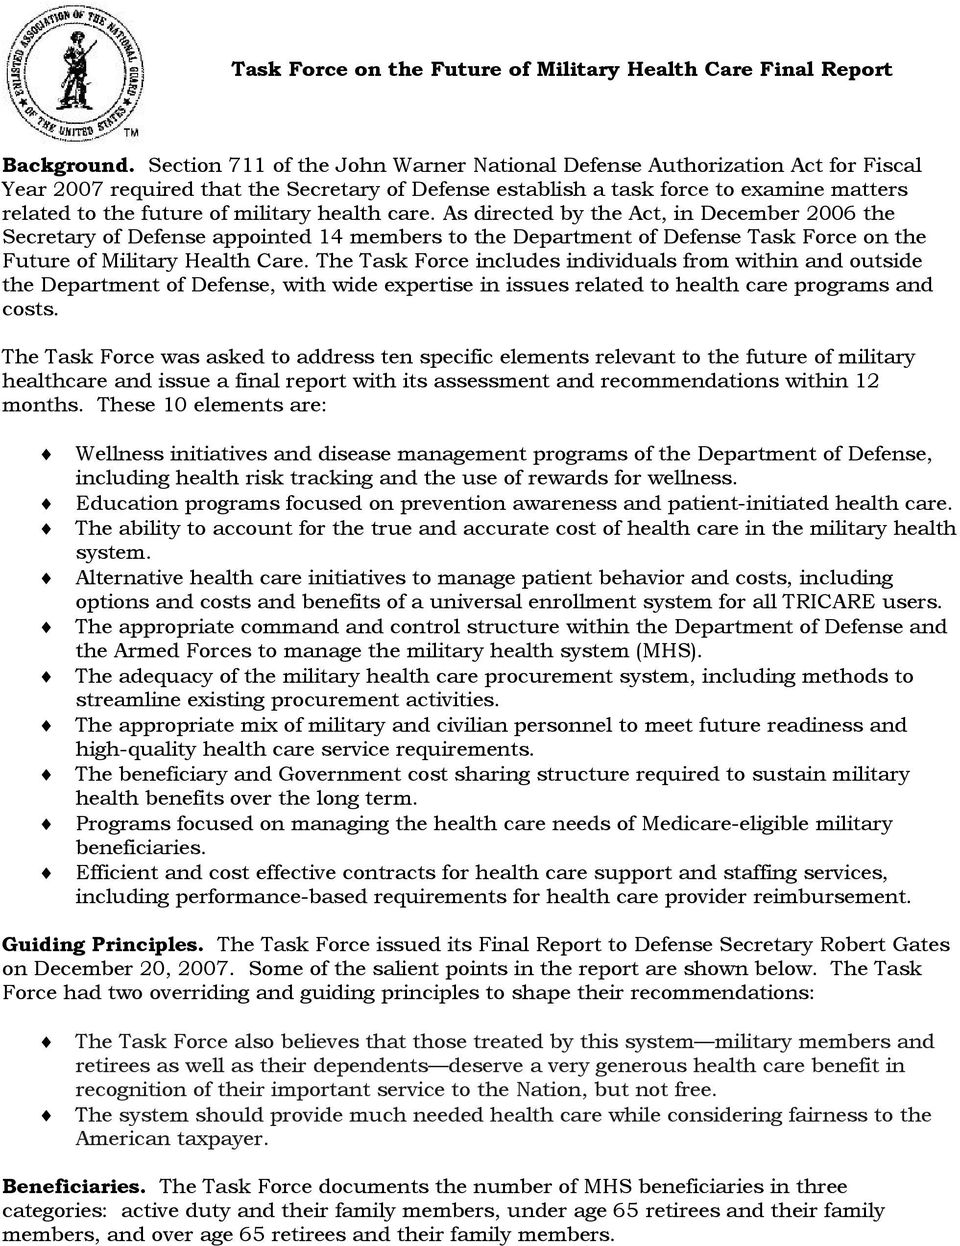 military health care. As directed by the Act, in December 2006 the Secretary of Defense appointed 14 members to the Department of Defense Task Force on the Future of Military Health Care.